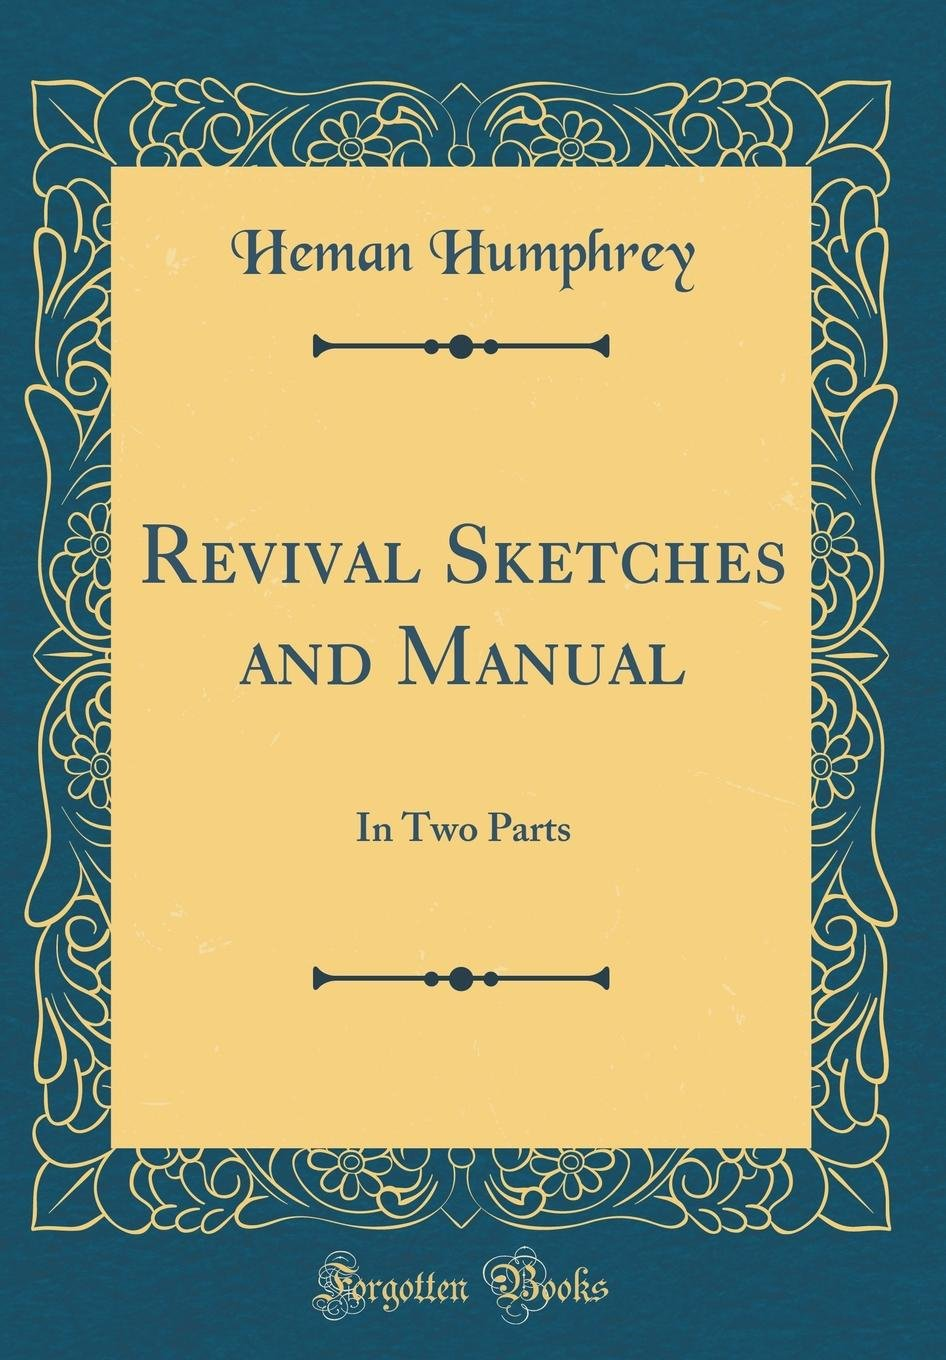 Revival Sketches and Manual: In Two Parts (Classic Reprint) PDF